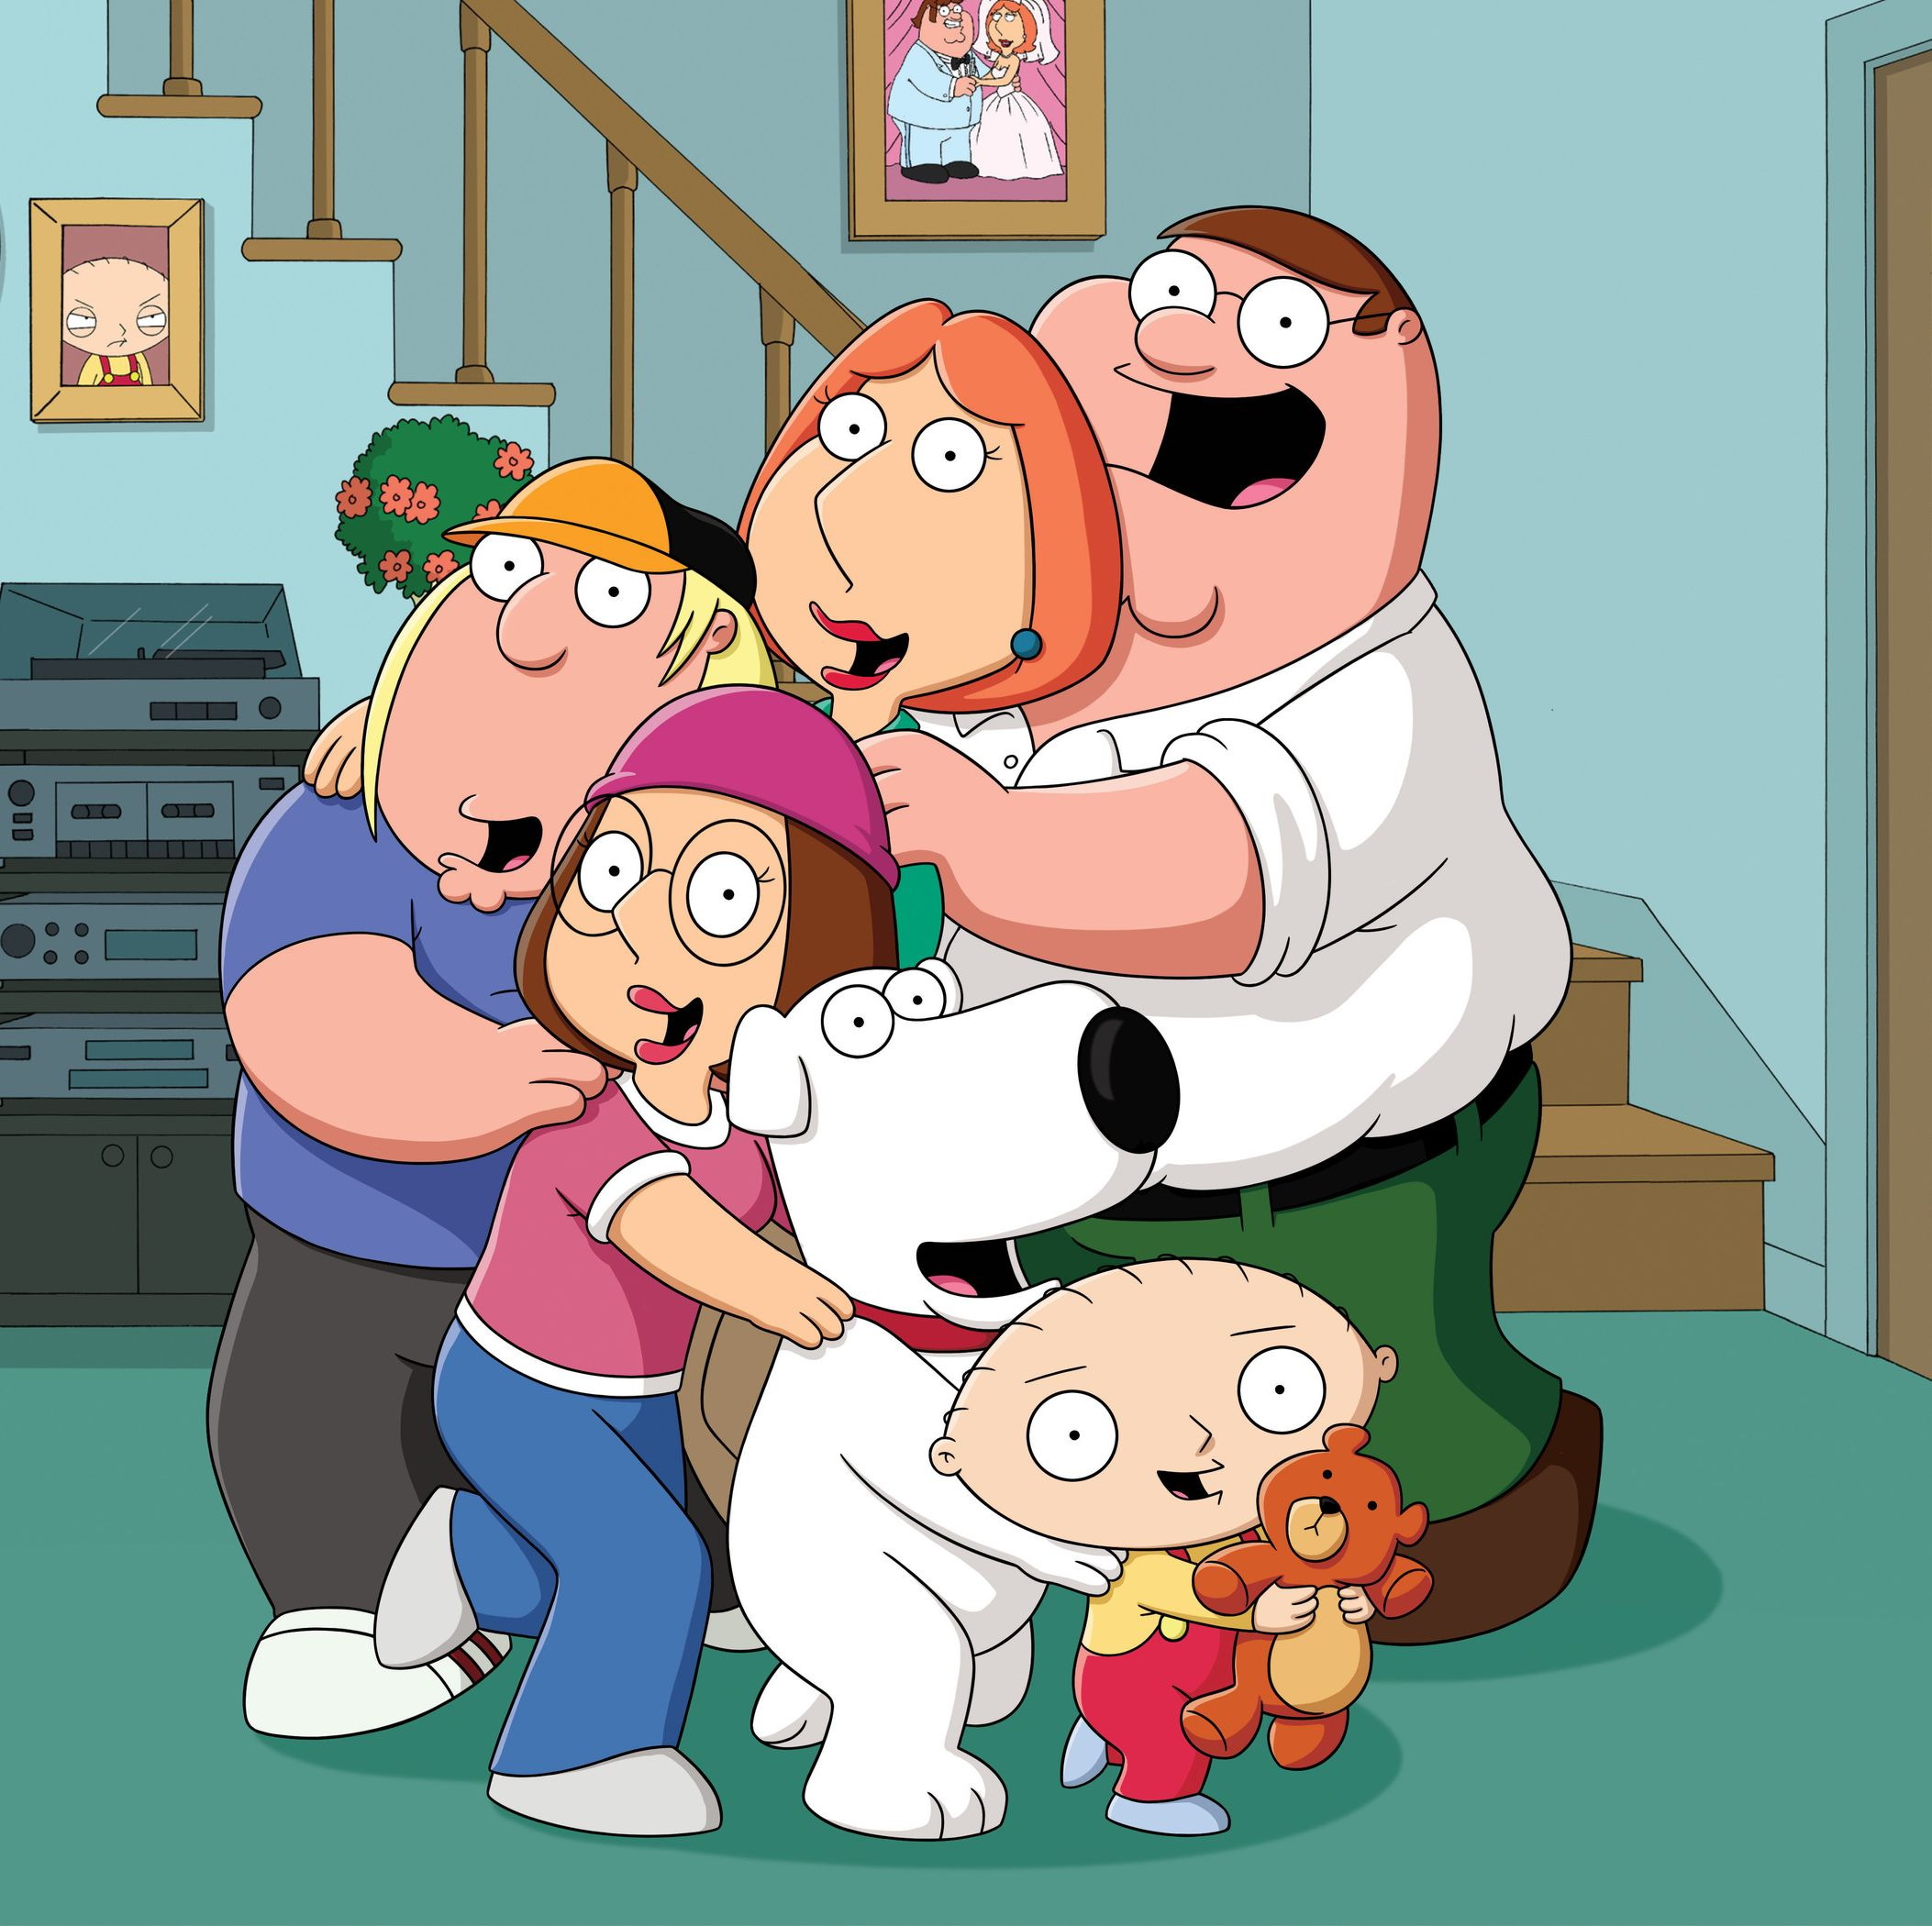 Exclusive: Family Guy actor Patrick Warburton reveals the episode he refused to film as it was too offensive